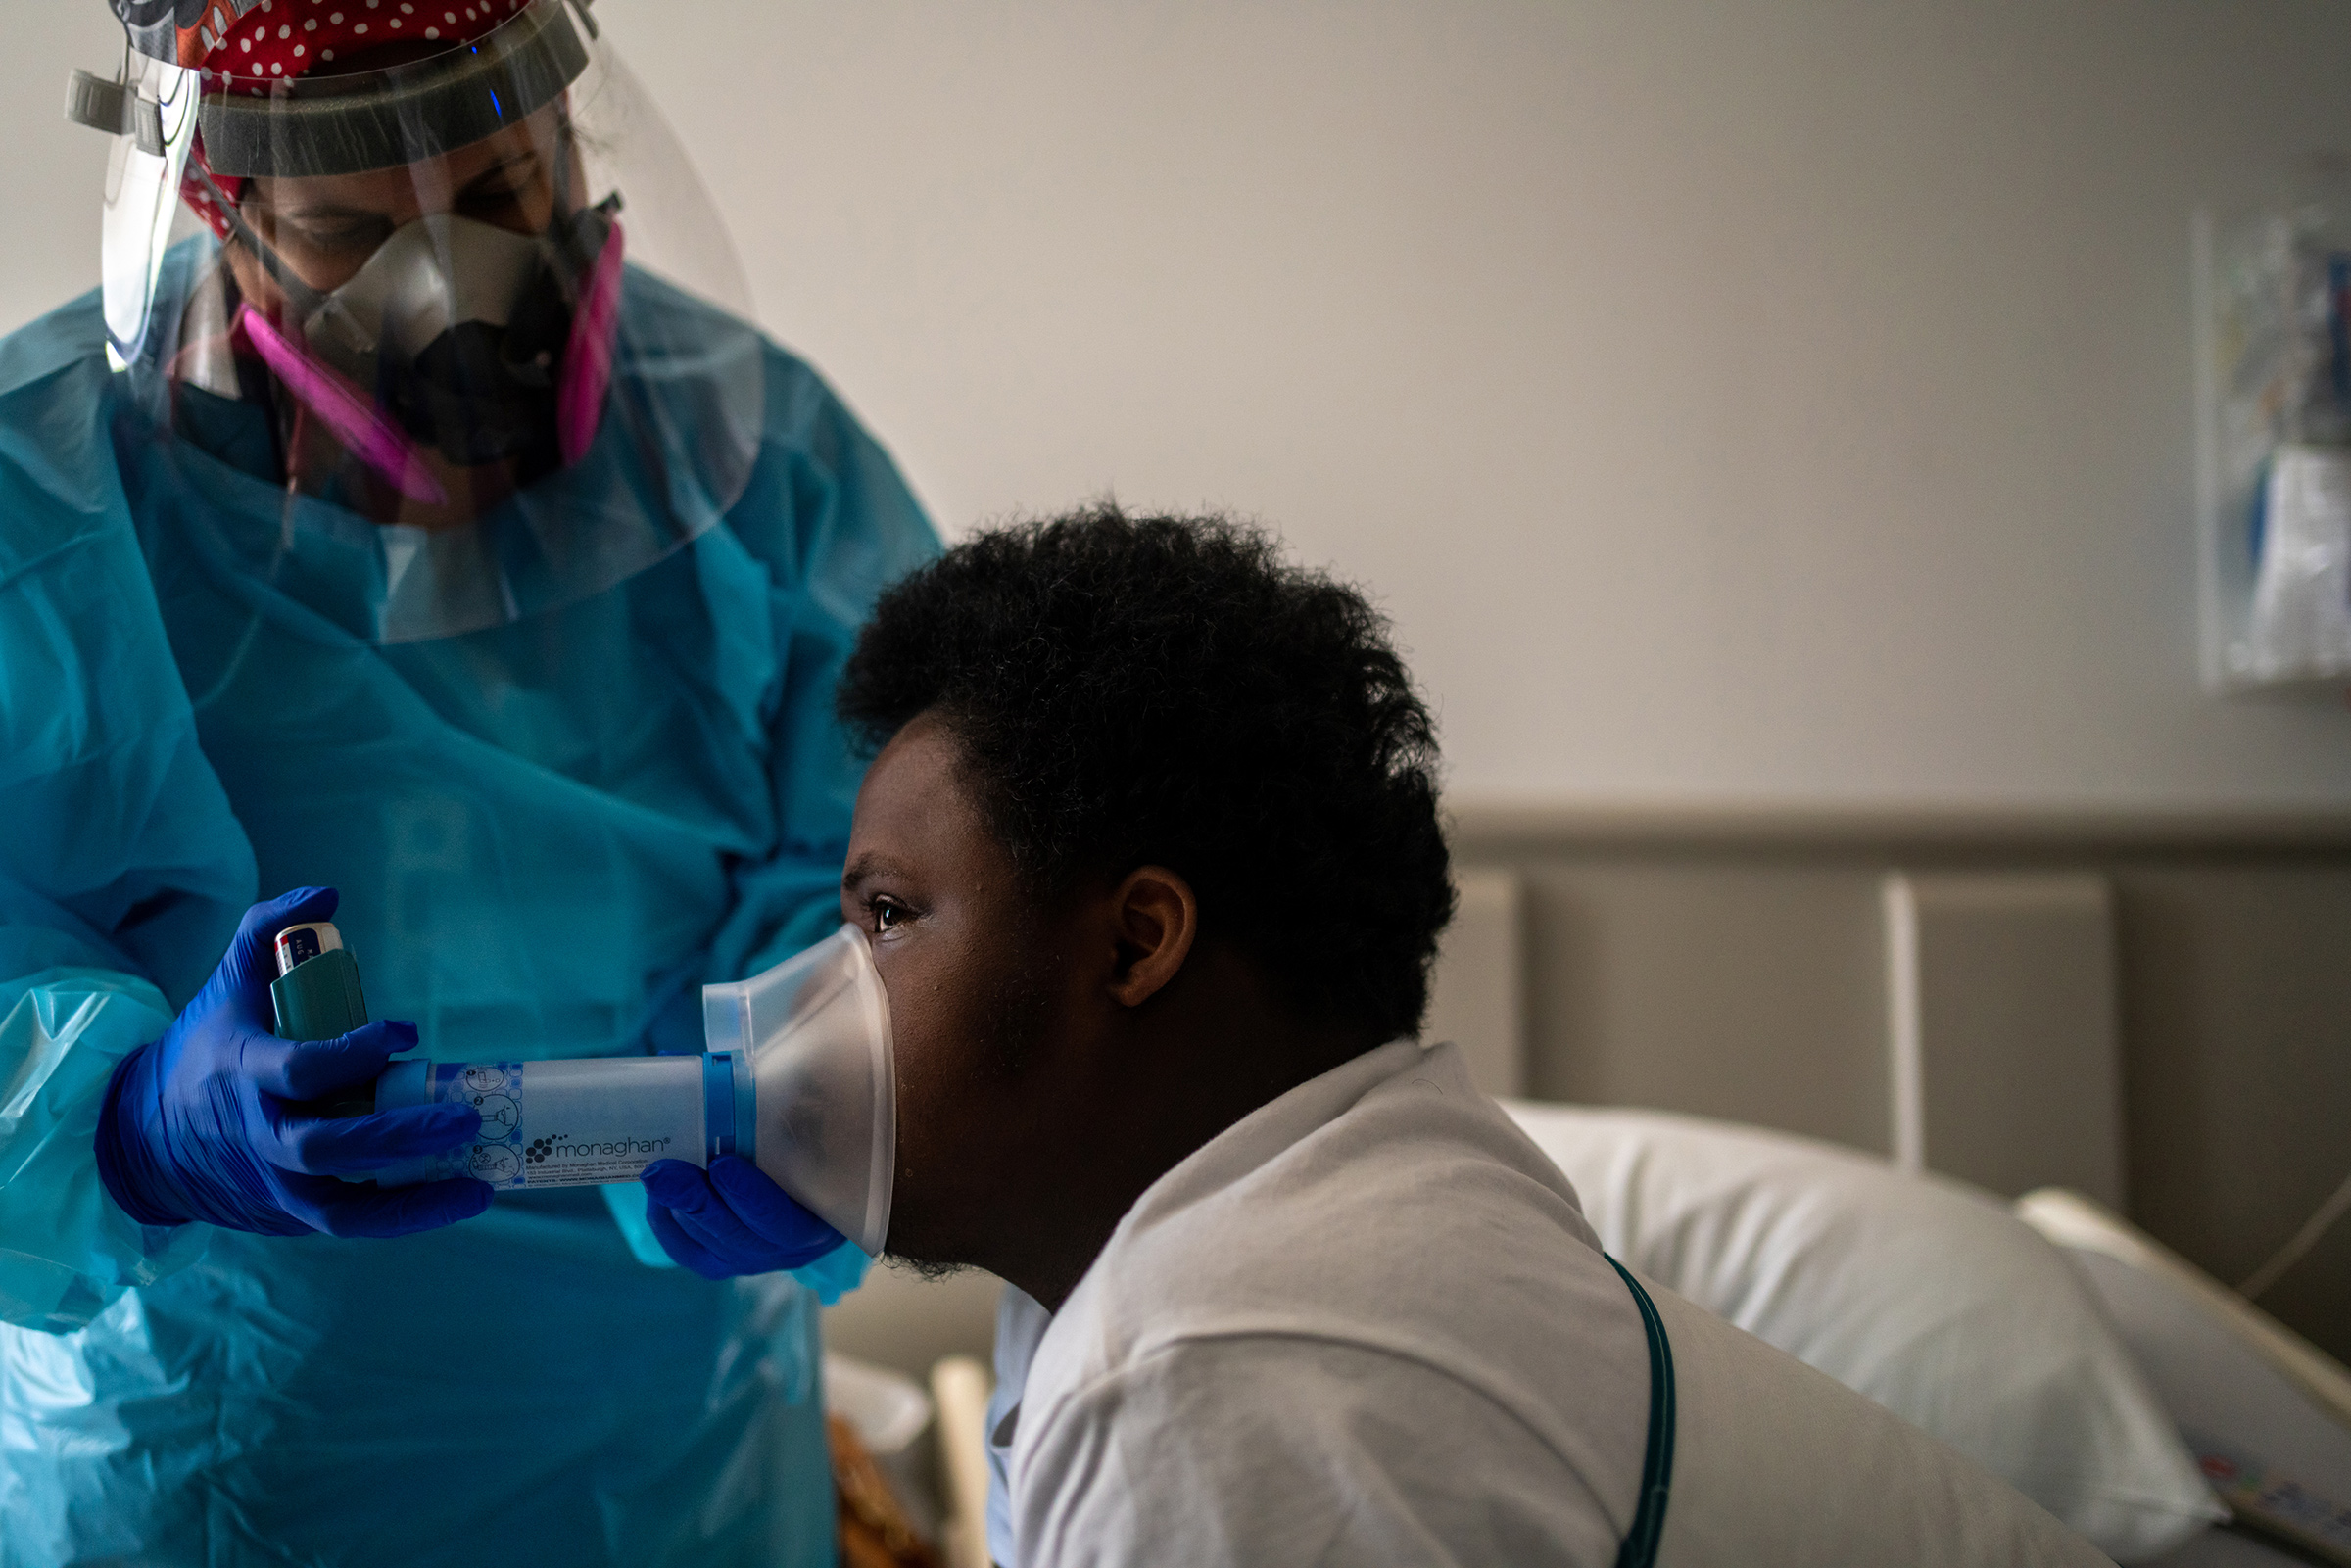 Nelson Alexis III, 17, undergoes respiratory therapy in his room at Children's Hospital New Orleans. Nelson, who has Down syndrome, was diagnosed with the virus in late July.